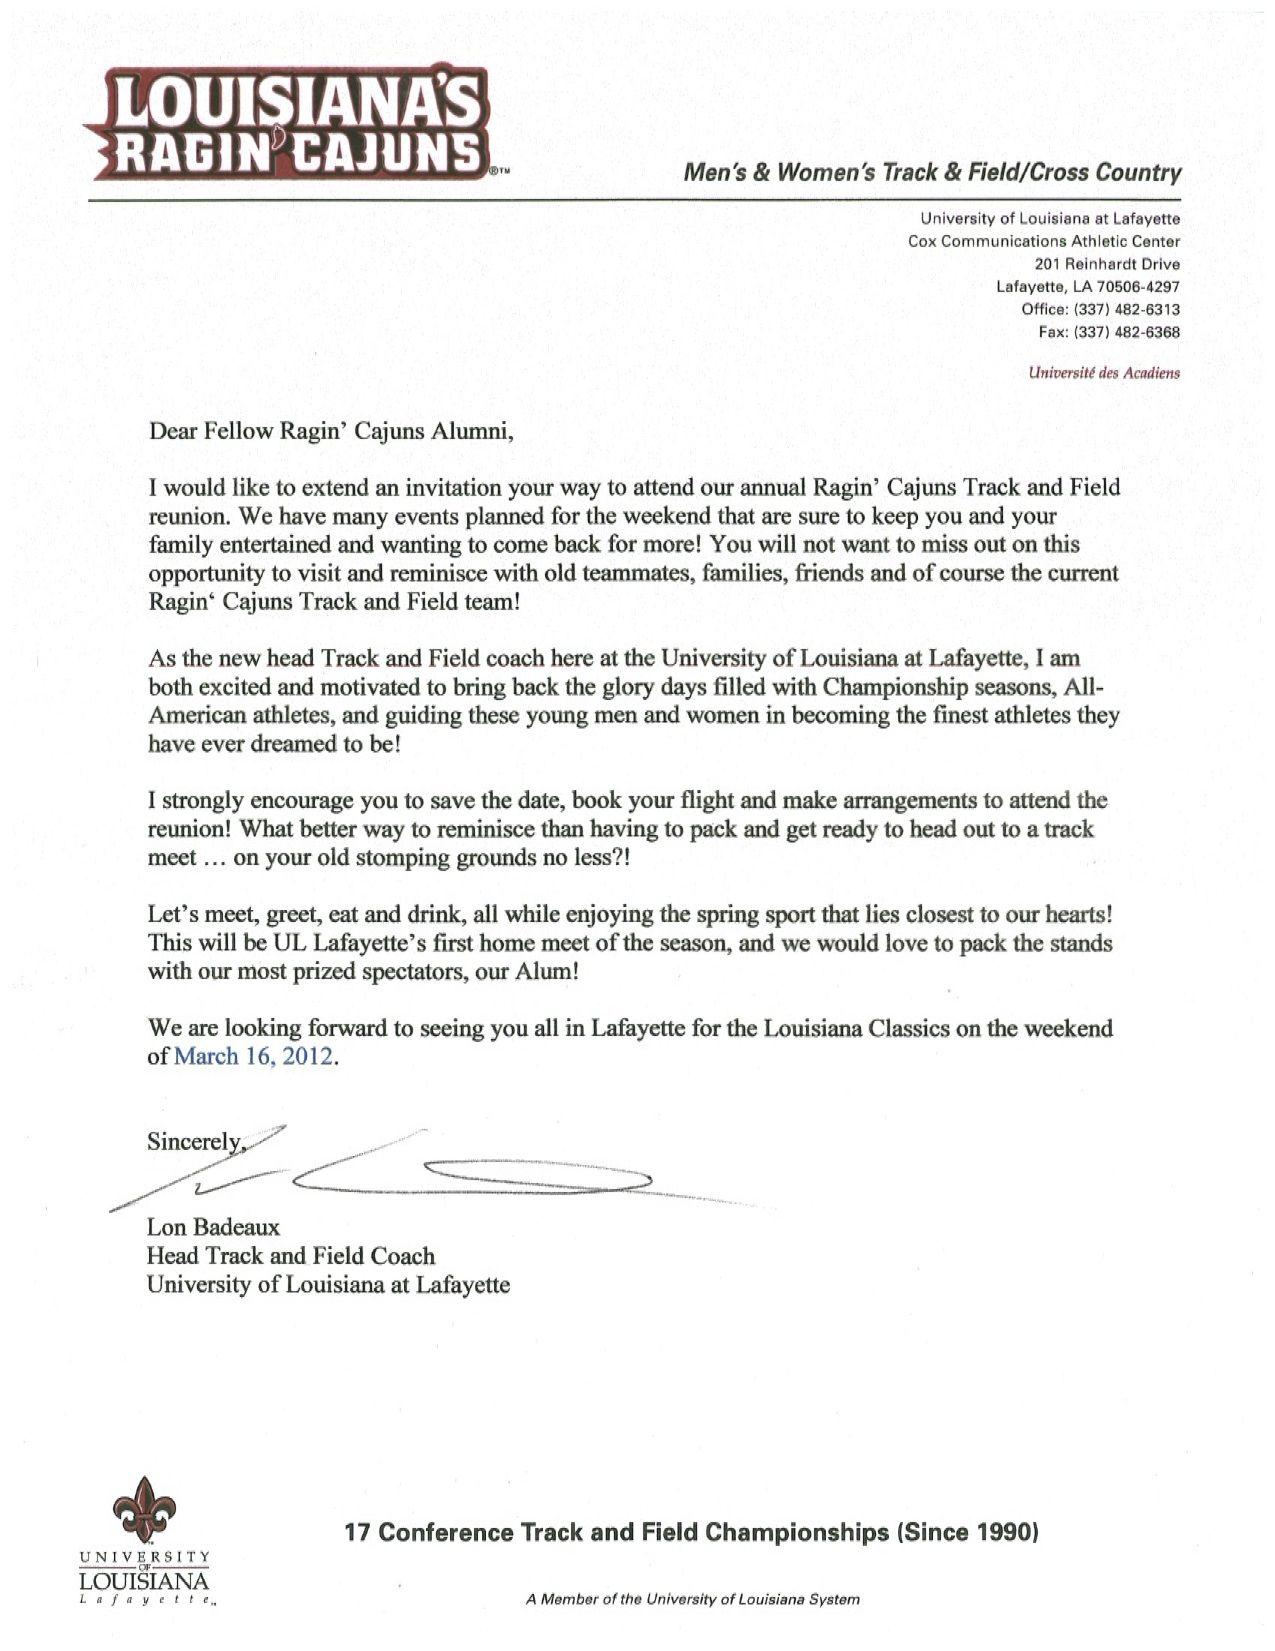 Welcome Letter From Lon Badeaux Head Track And Field CoachWelcome Letter  Business Letter Sample